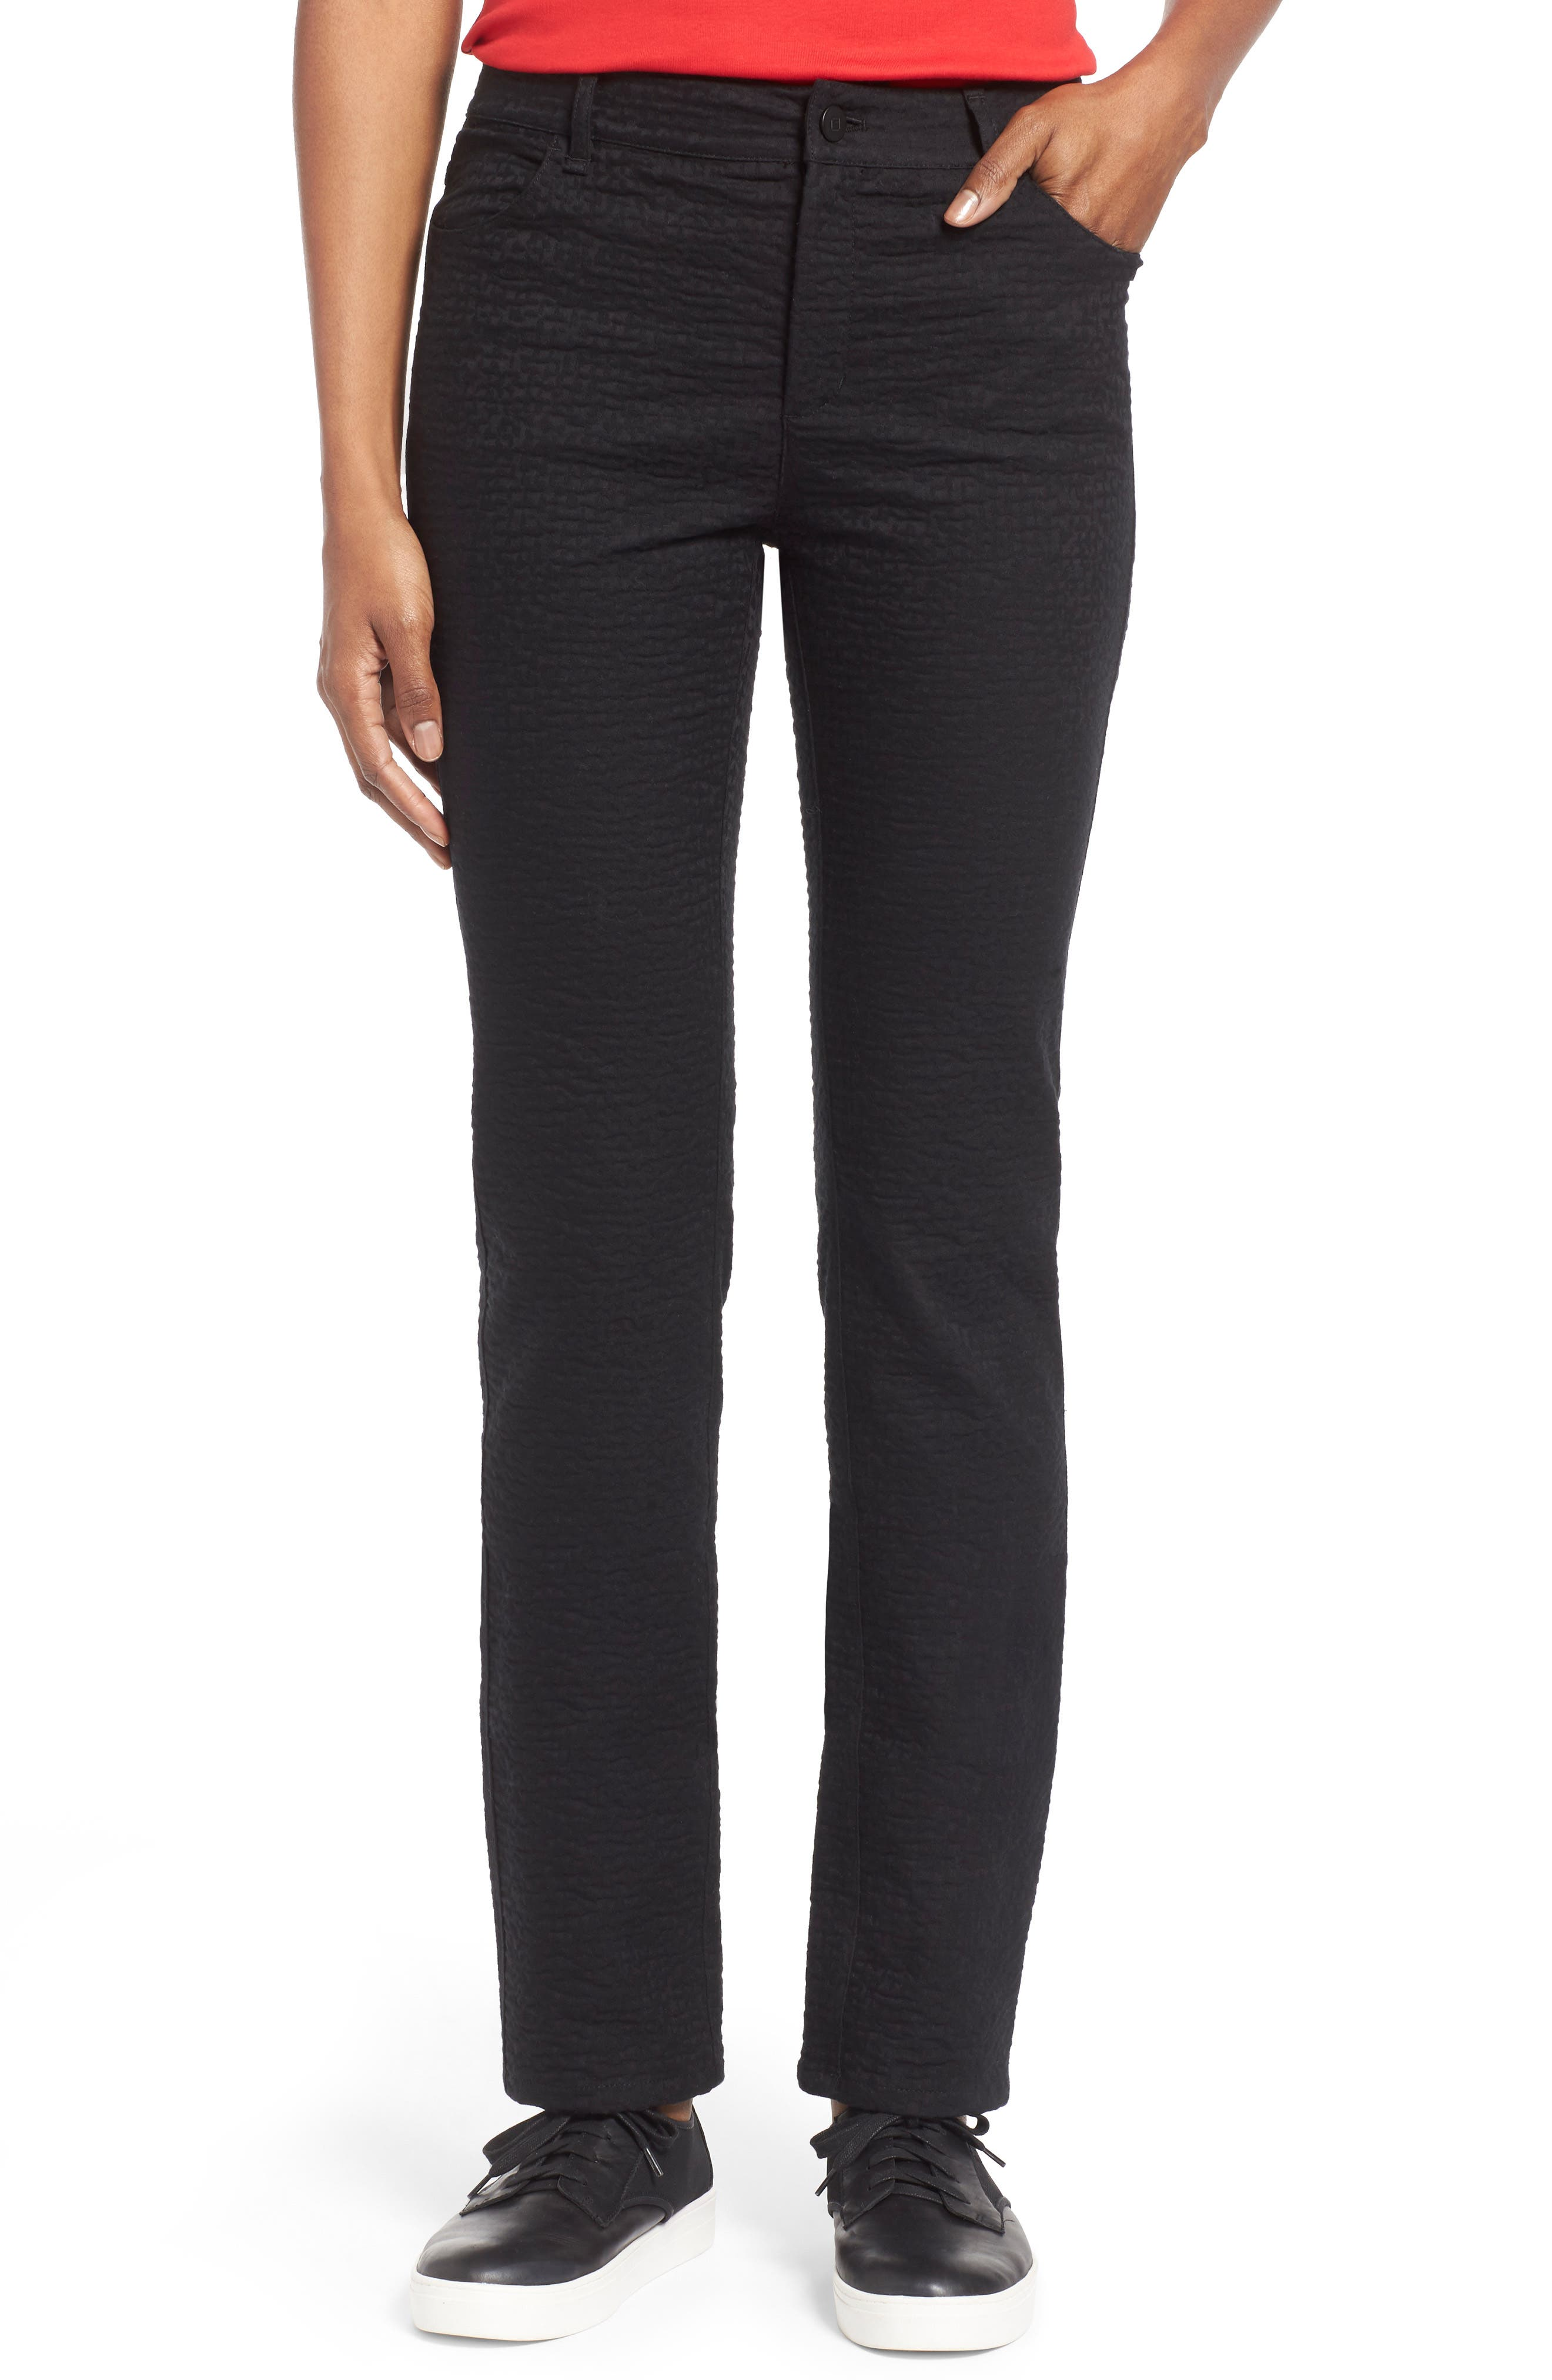 Curvy Fit Jacquard Stretch Slim Leg Jeans,                         Main,                         color, 001